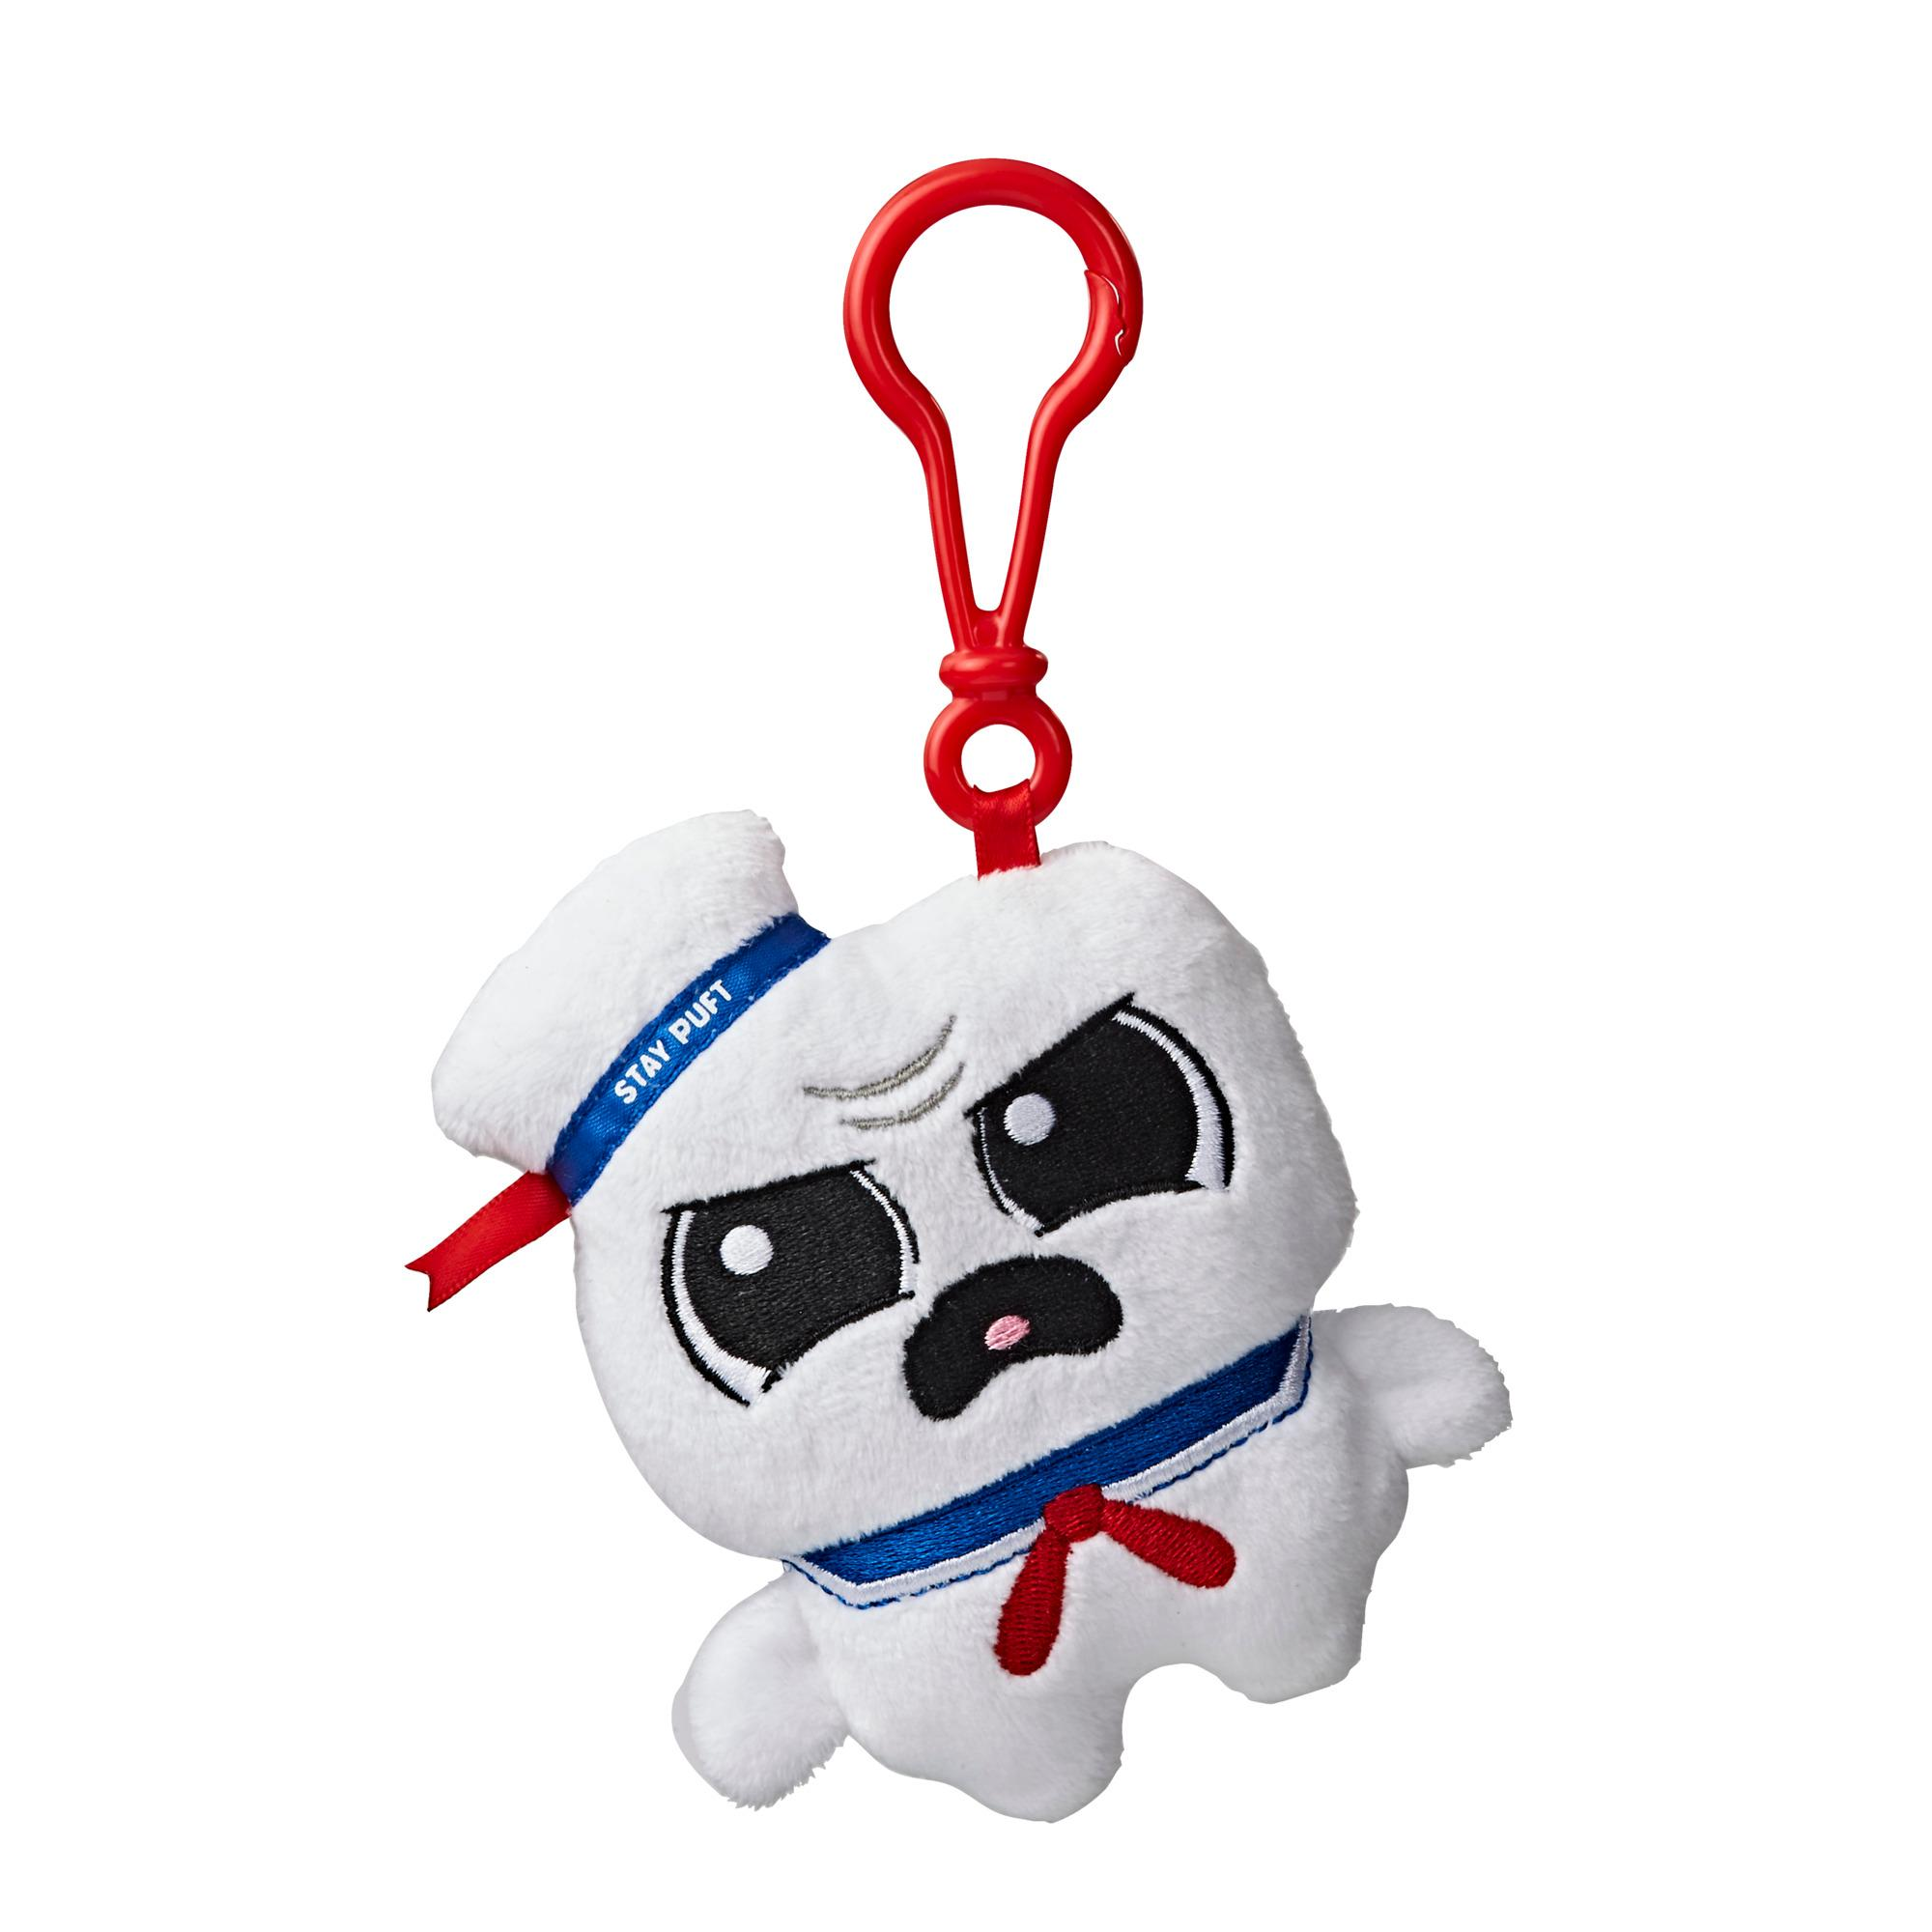 Ghostbusters Paranormal Plushies Stay Puft Marshmallow Man Stuffed Ghost Cuddly Soft Toy for Naptime Snuggle Time Plush